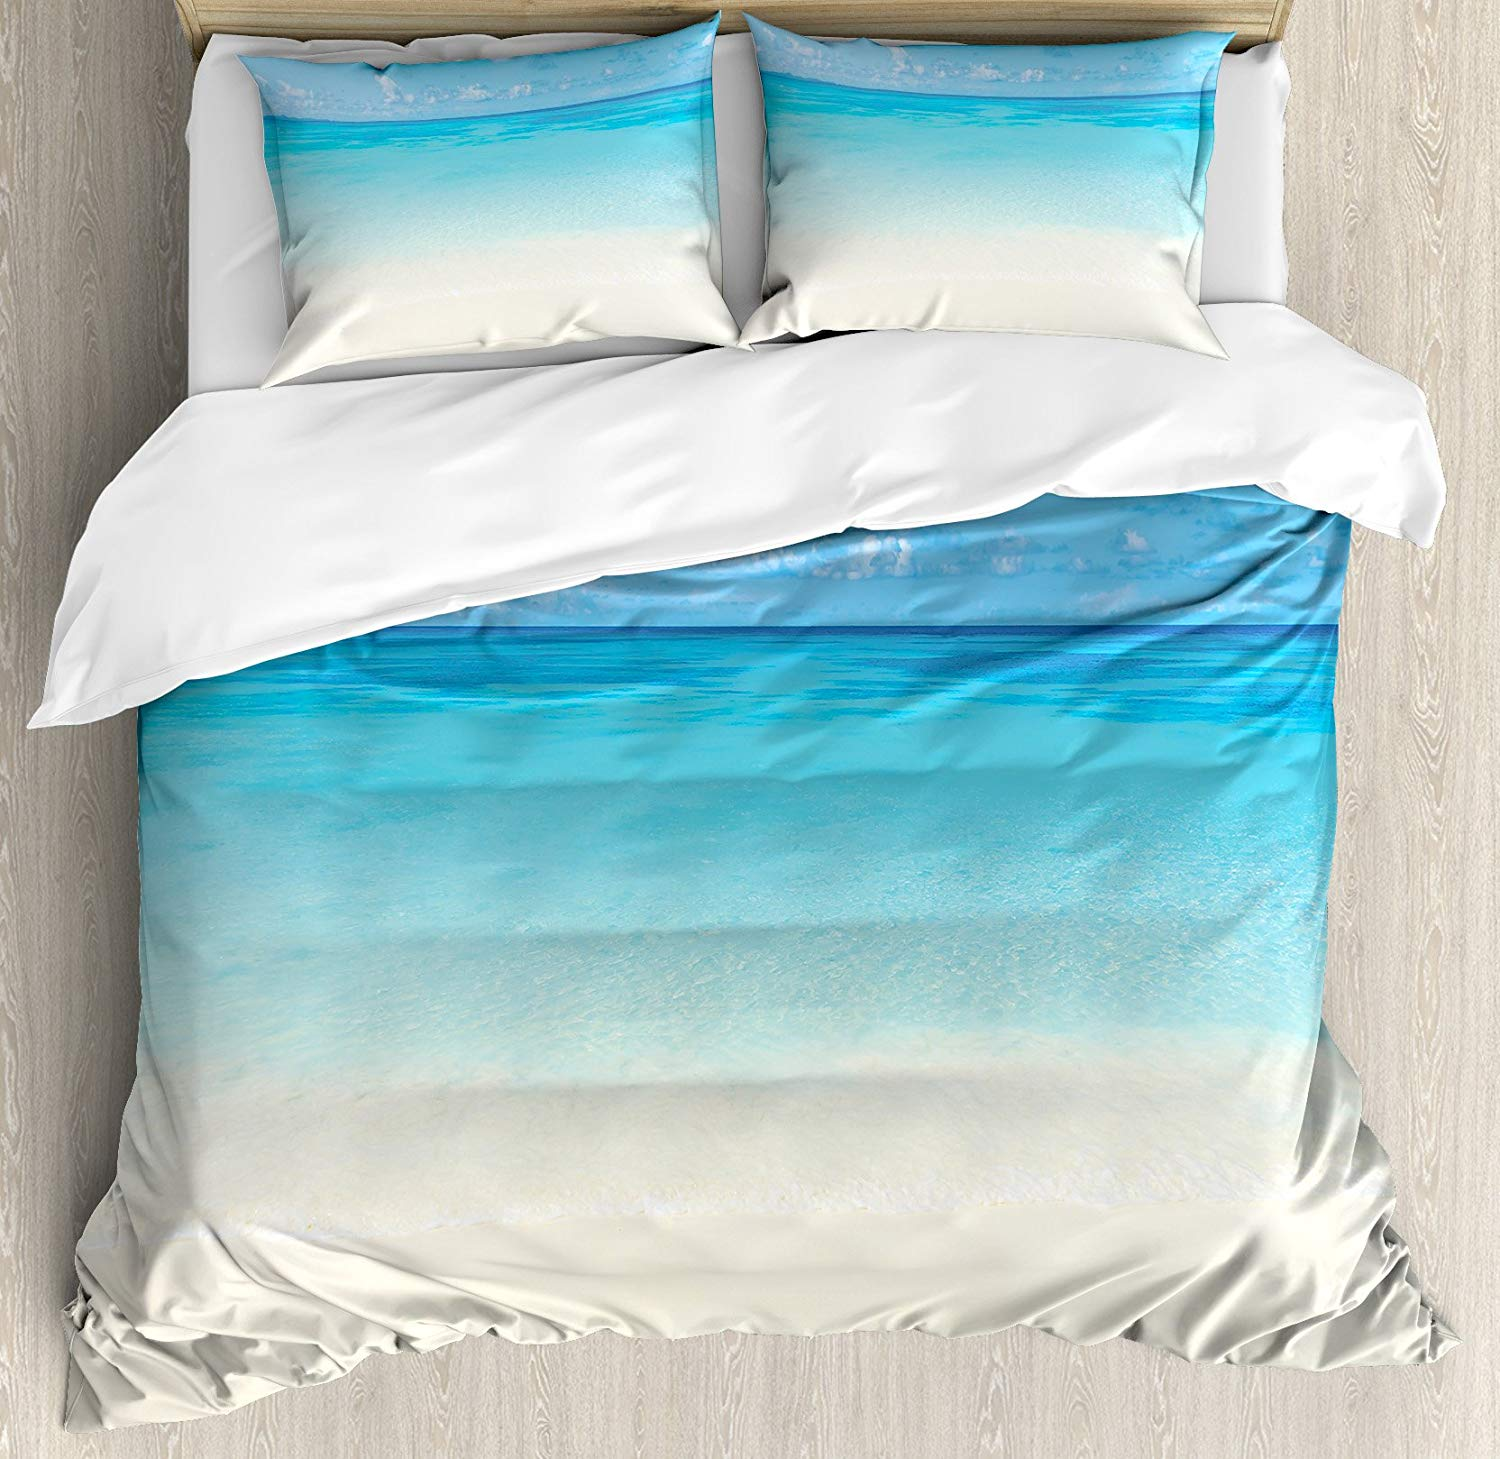 Ocean Duvet Cover Set Paradise Beach in Tropical Caribbean Sea with Sky View Beach House Theme Decorative 3 Piece Bedding Set image